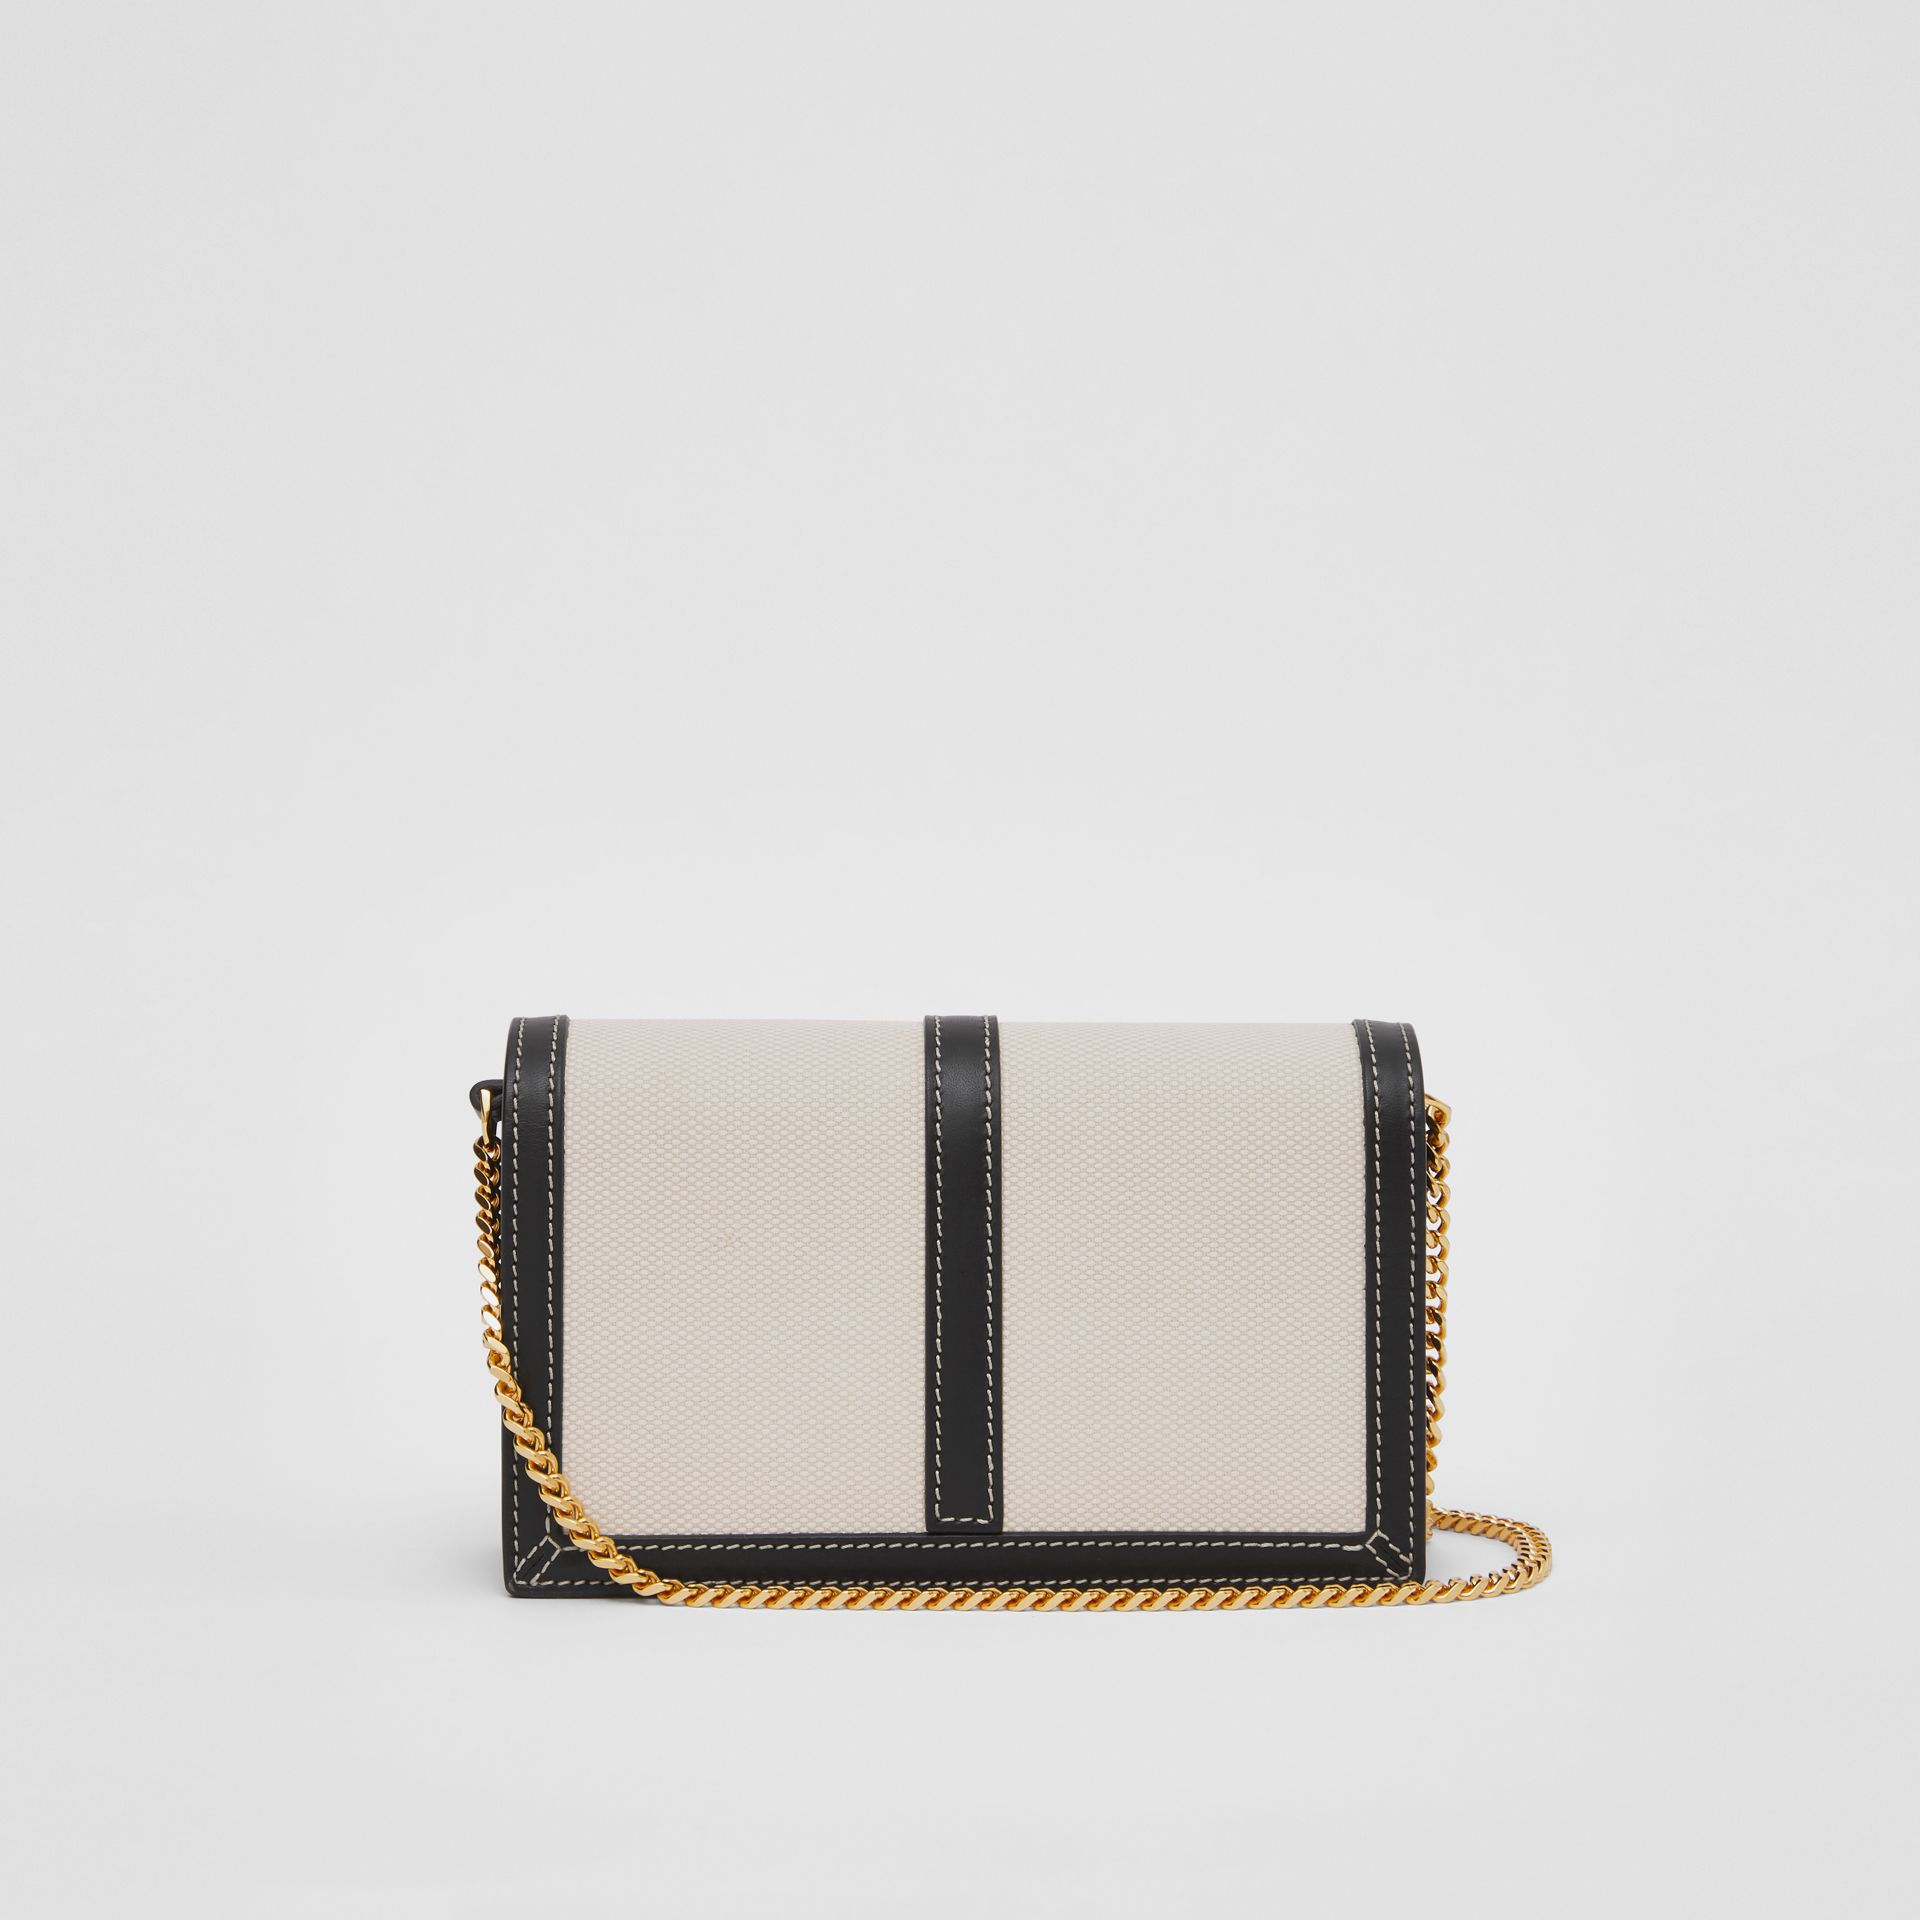 Mini Canvas and Leather TB Envelope Clutch in Tan - Women | Burberry - gallery image 5